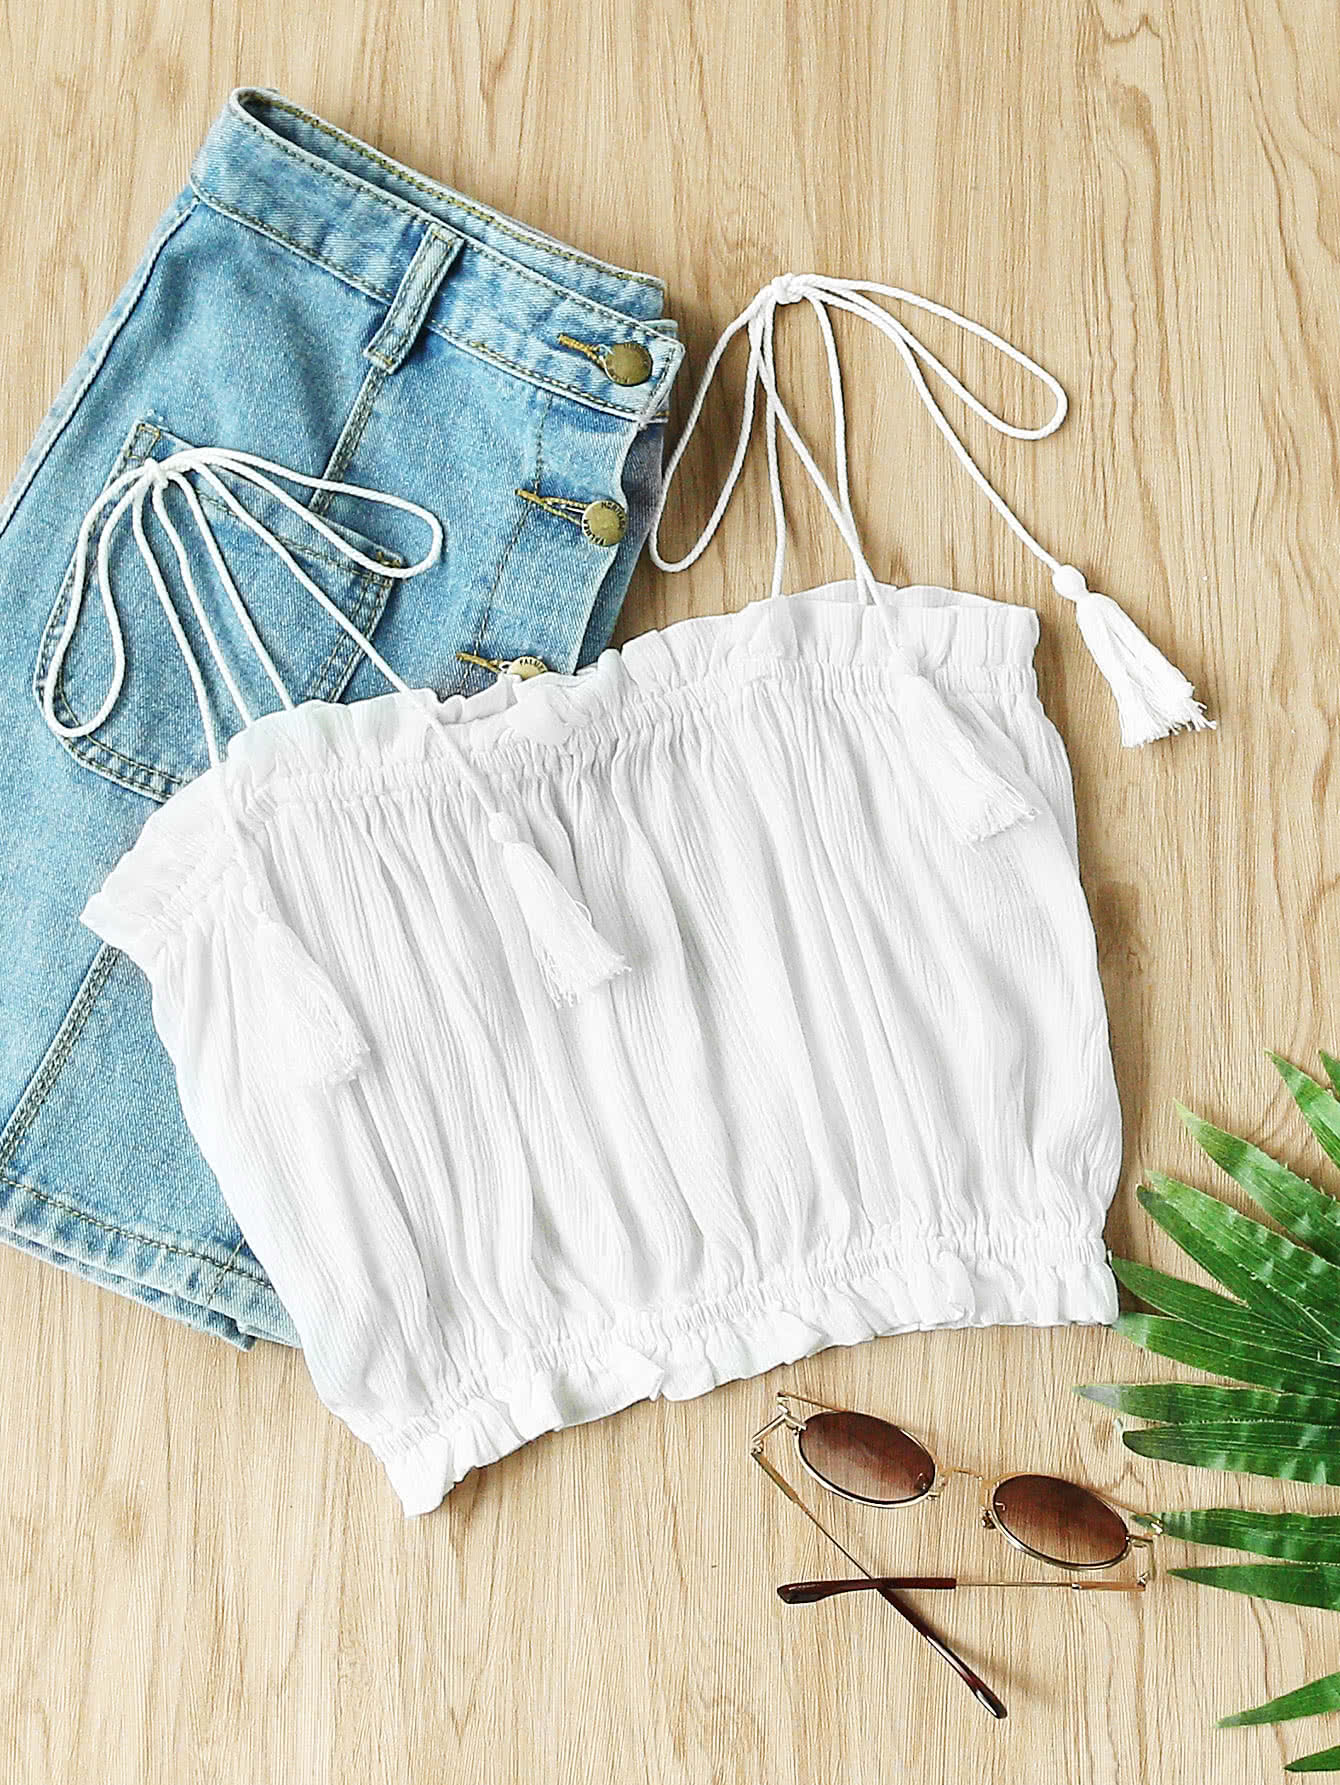 Tassel Tie Shoulder Frill Trim Crop Top scallop trim one shoulder crop top